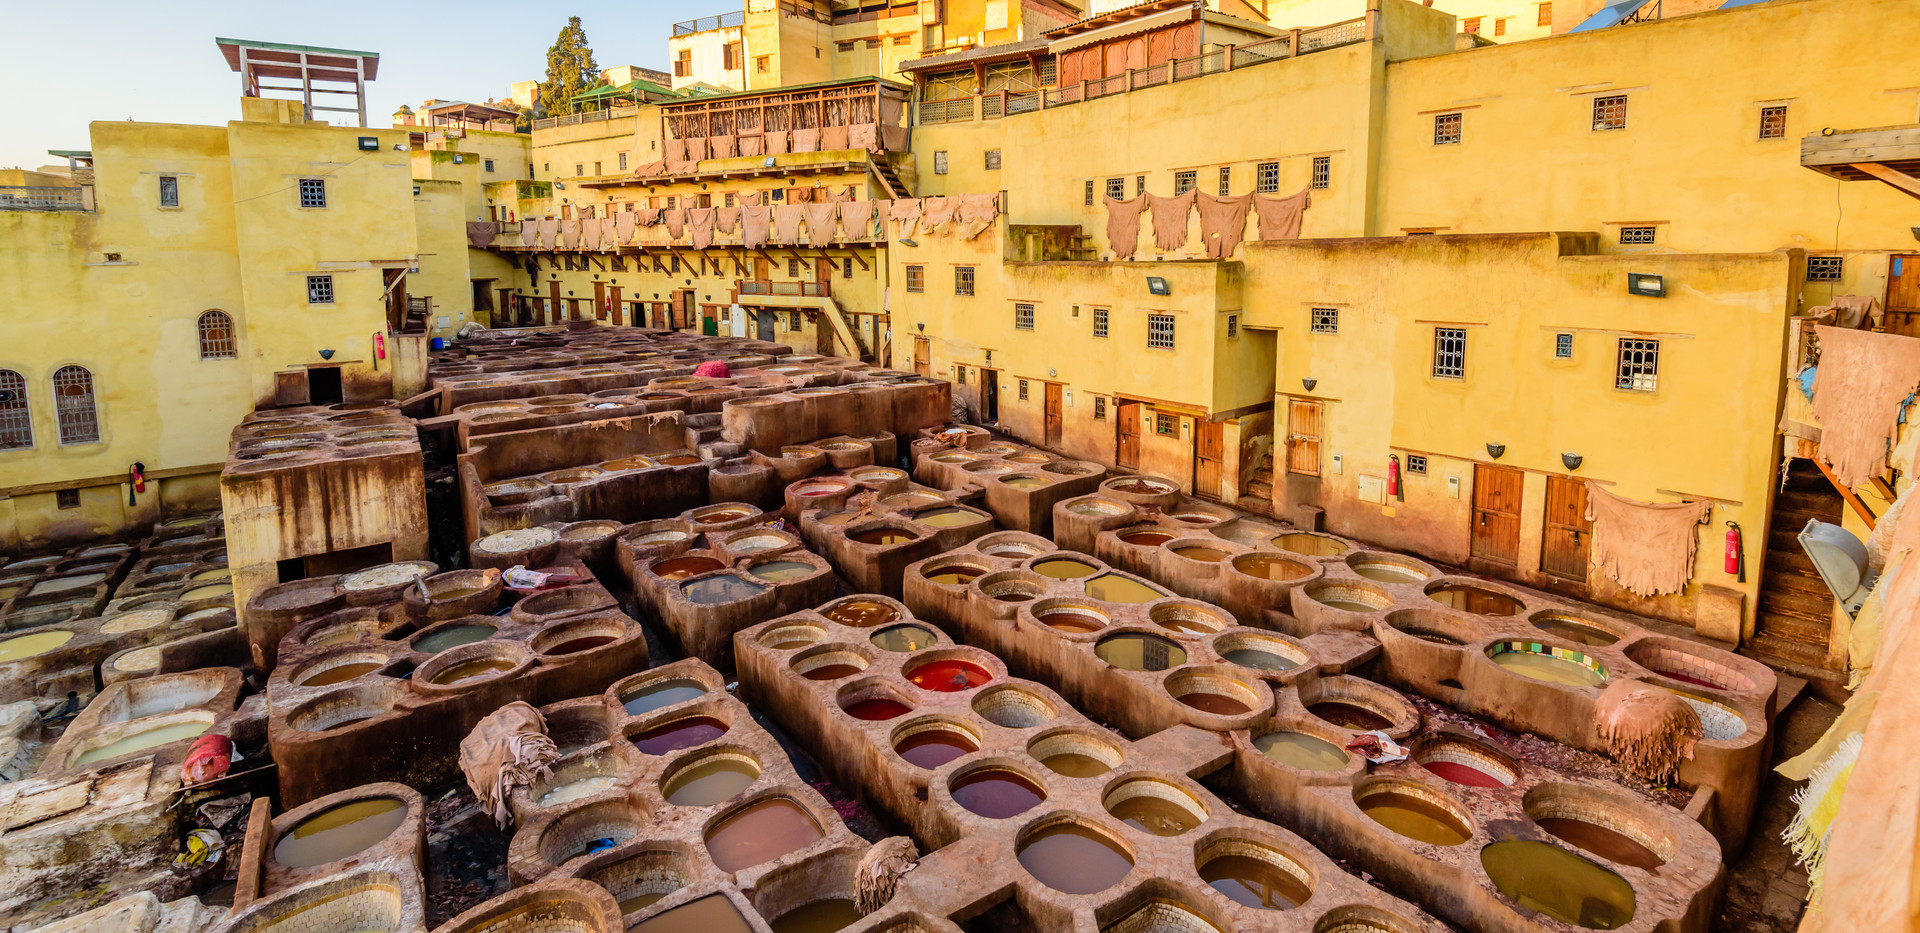 Sightseeing of Morocco. Tanneries of Fez